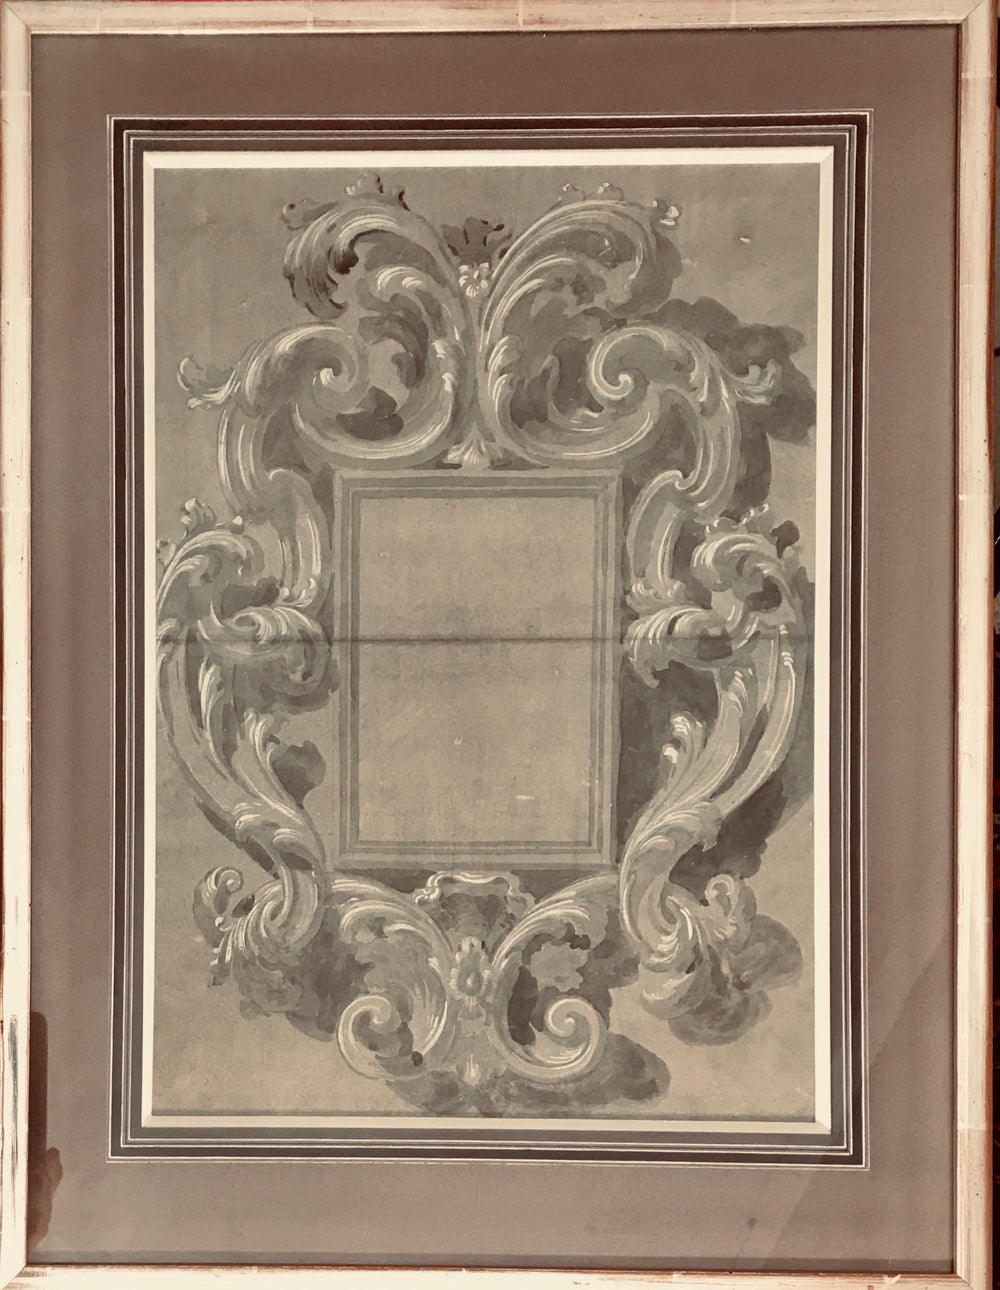 XVIIth Century Drawing for elaborately carved Florentine Mirror Frame.